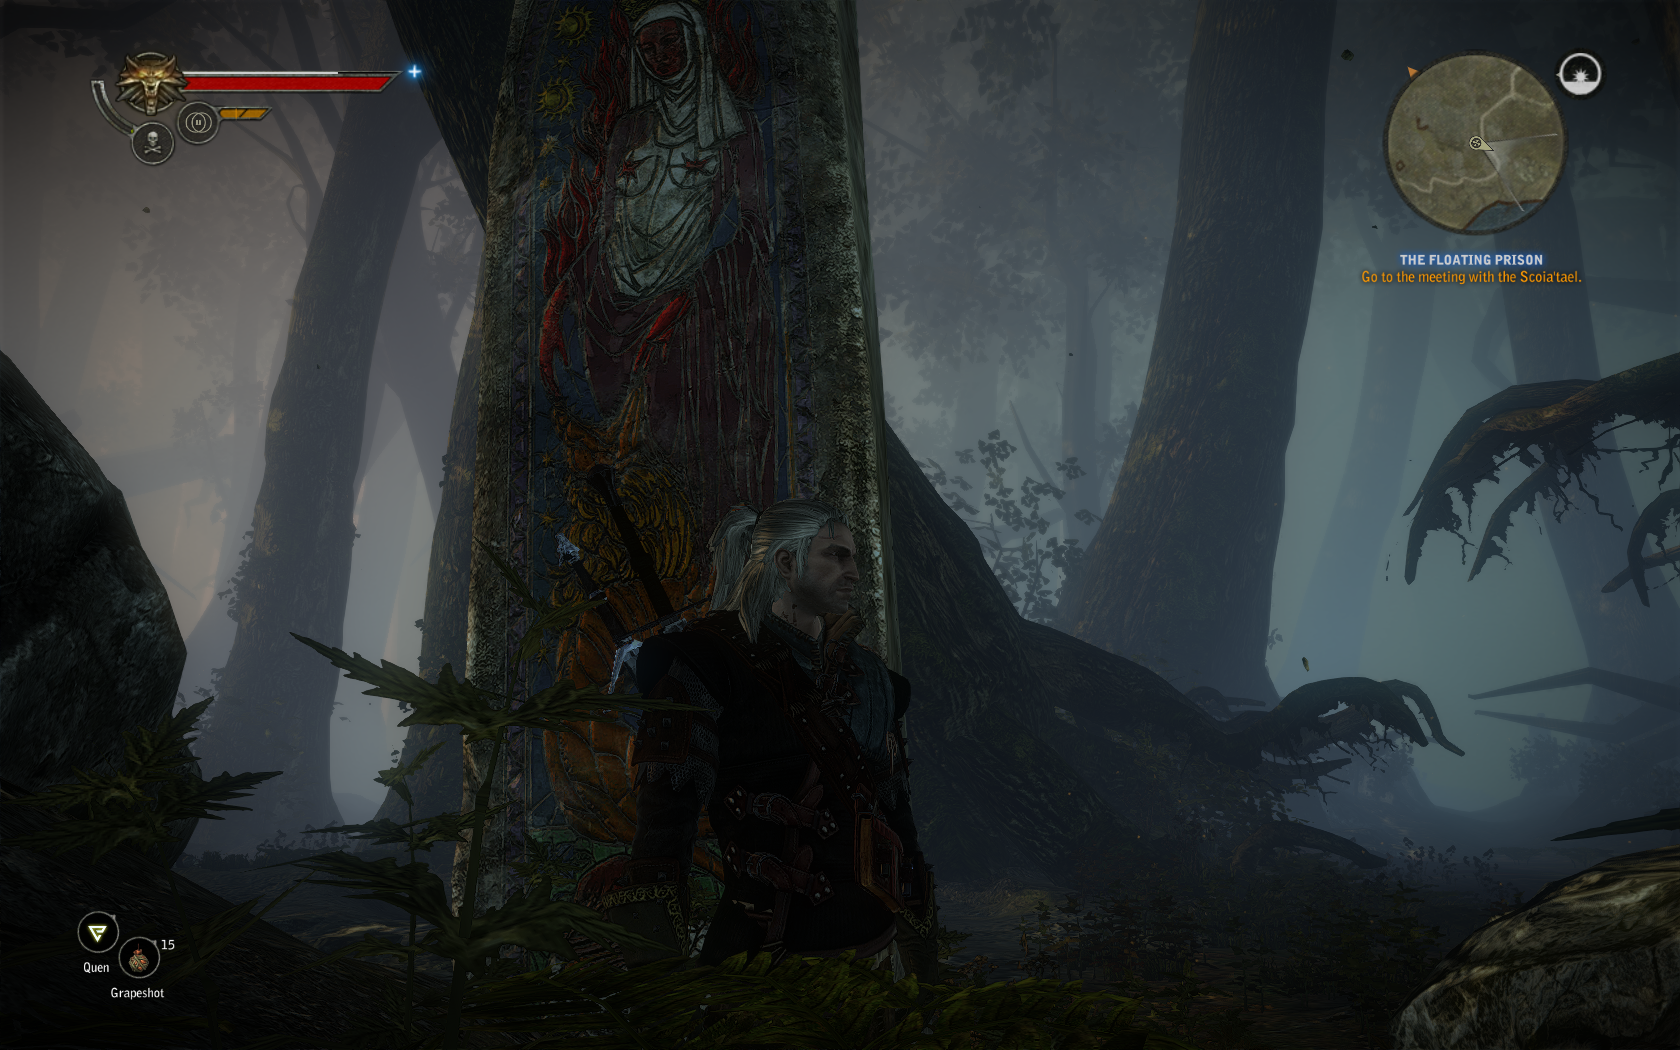 witcher22012-04-2801-wrrff.png